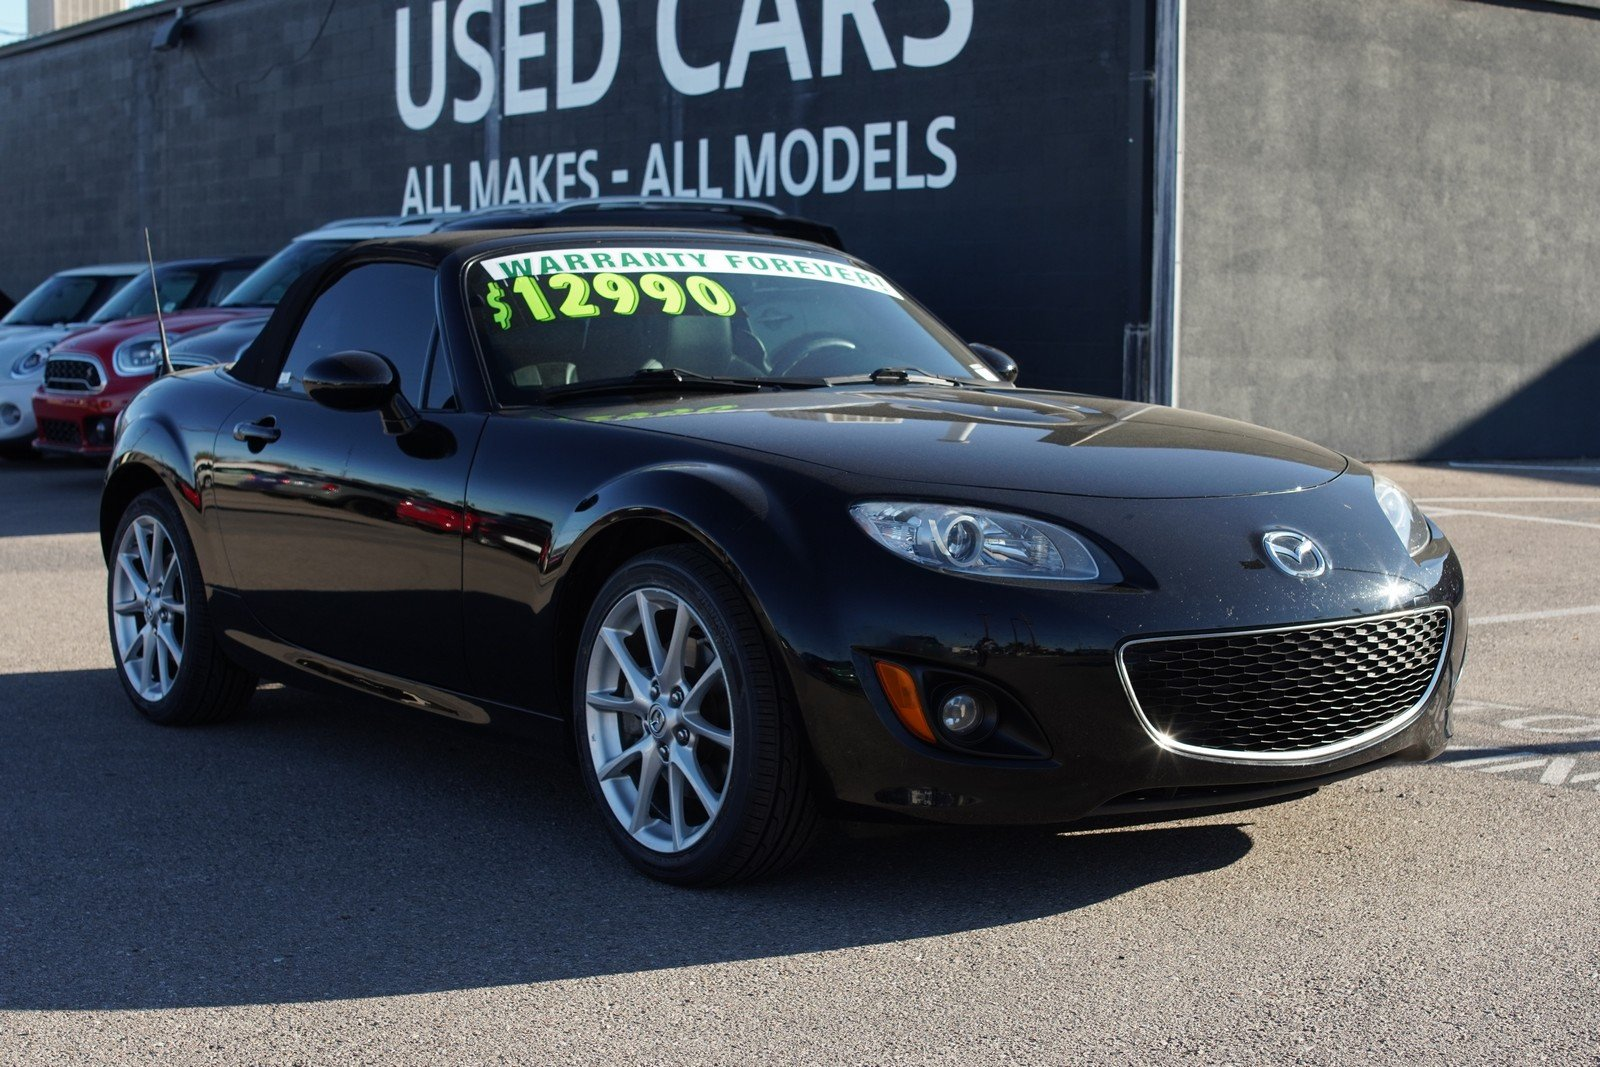 Pre-Owned 2009 Mazda MX-5 Miata Grand Touring